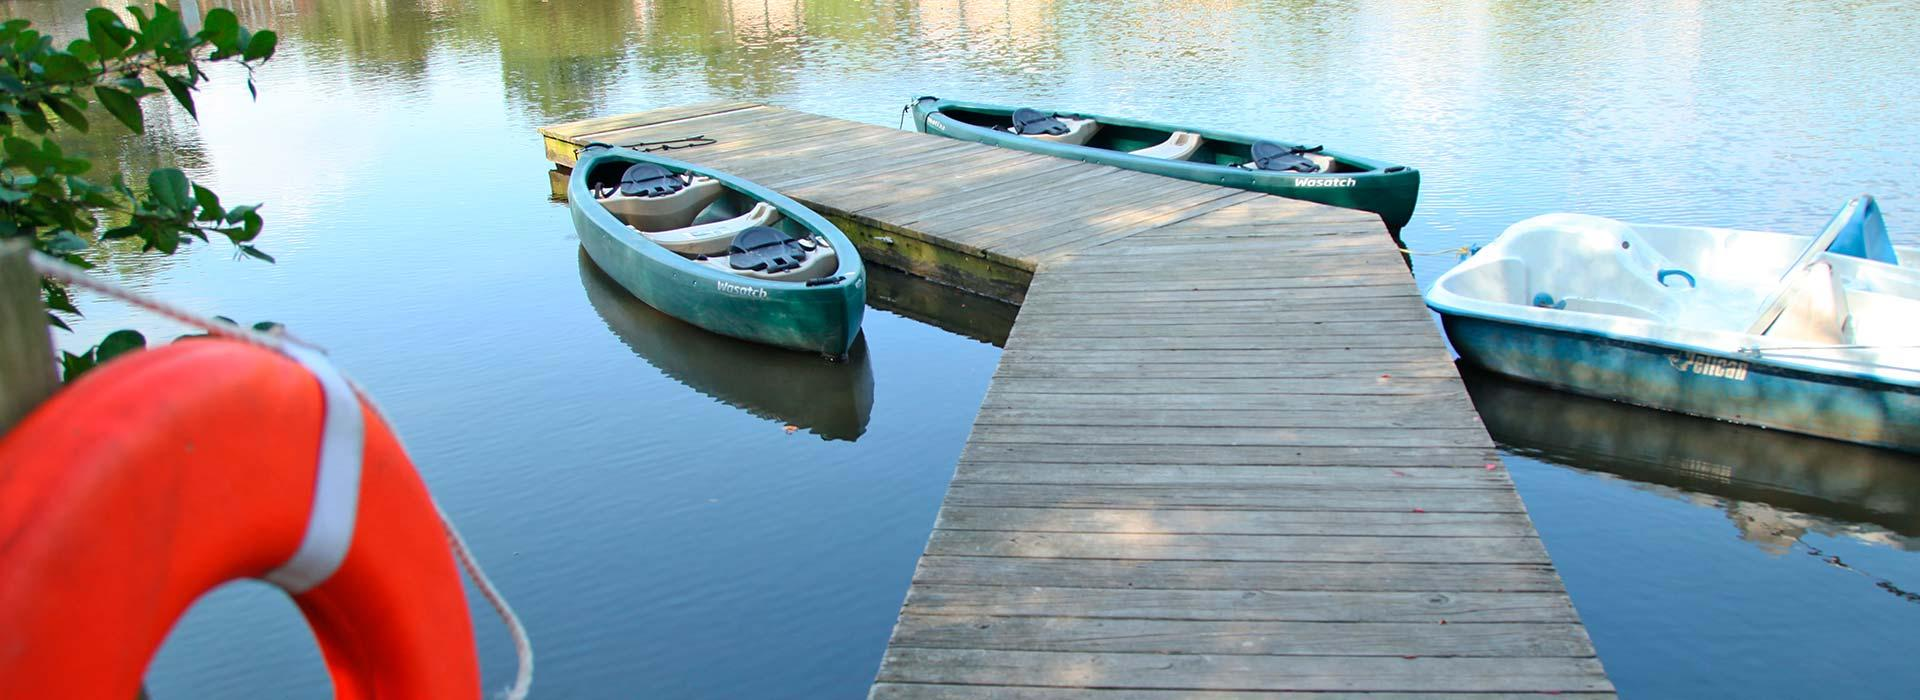 dock on the pond